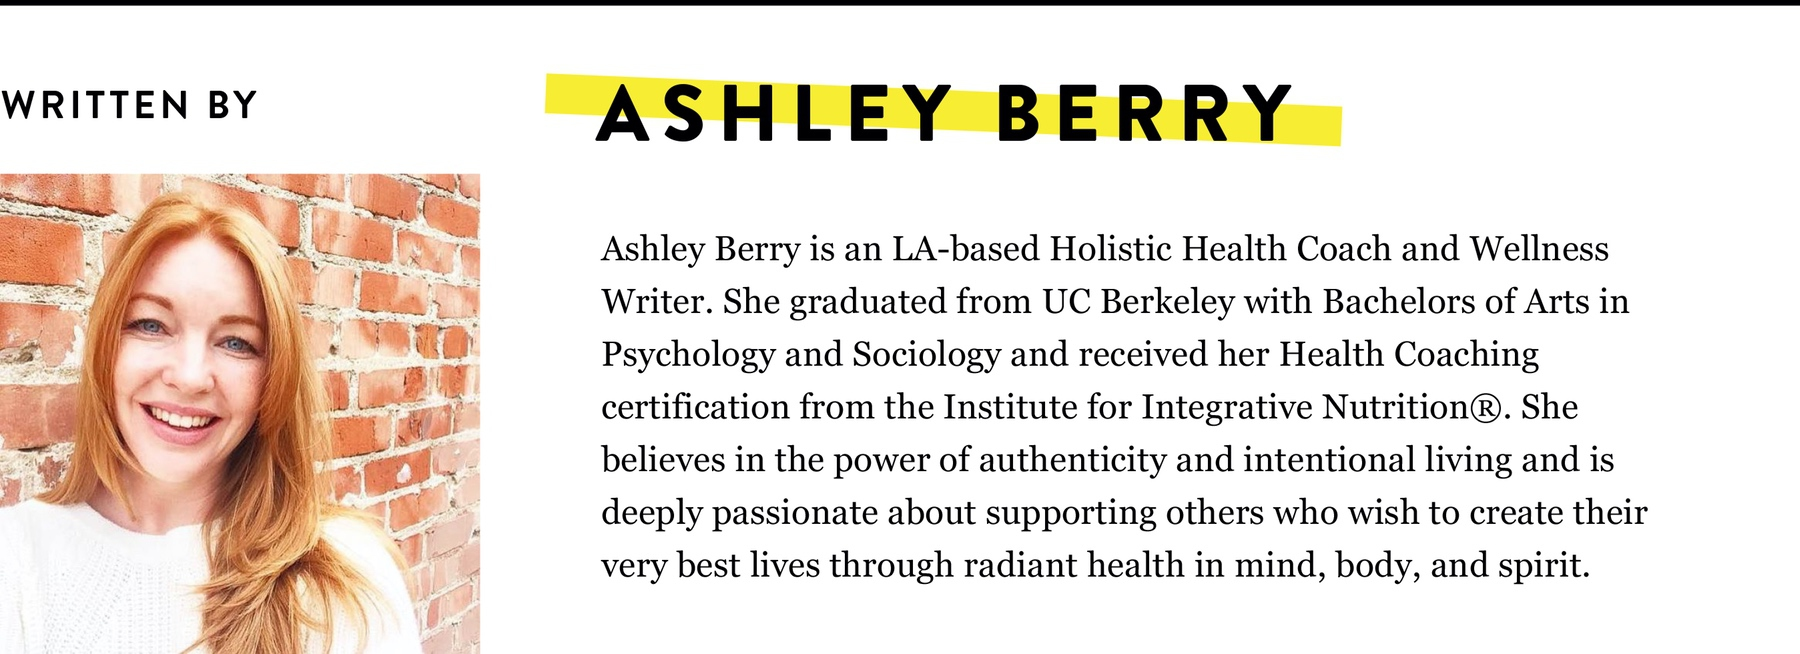 ASHLEY BERRY BIO